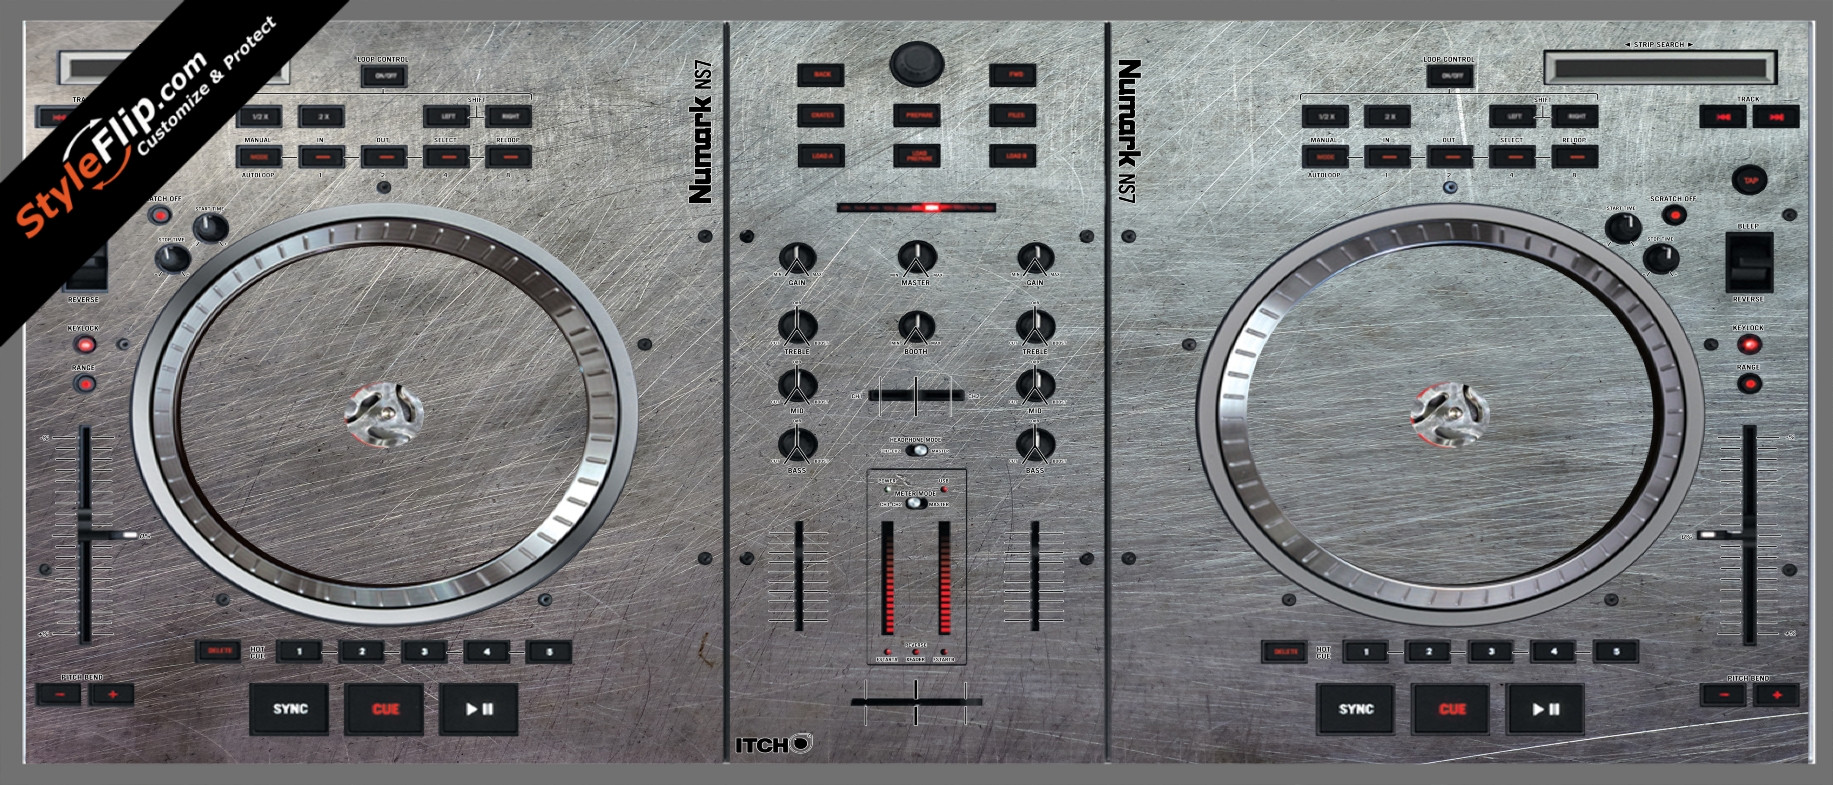 Steel Your Faceplate Numark NS-7